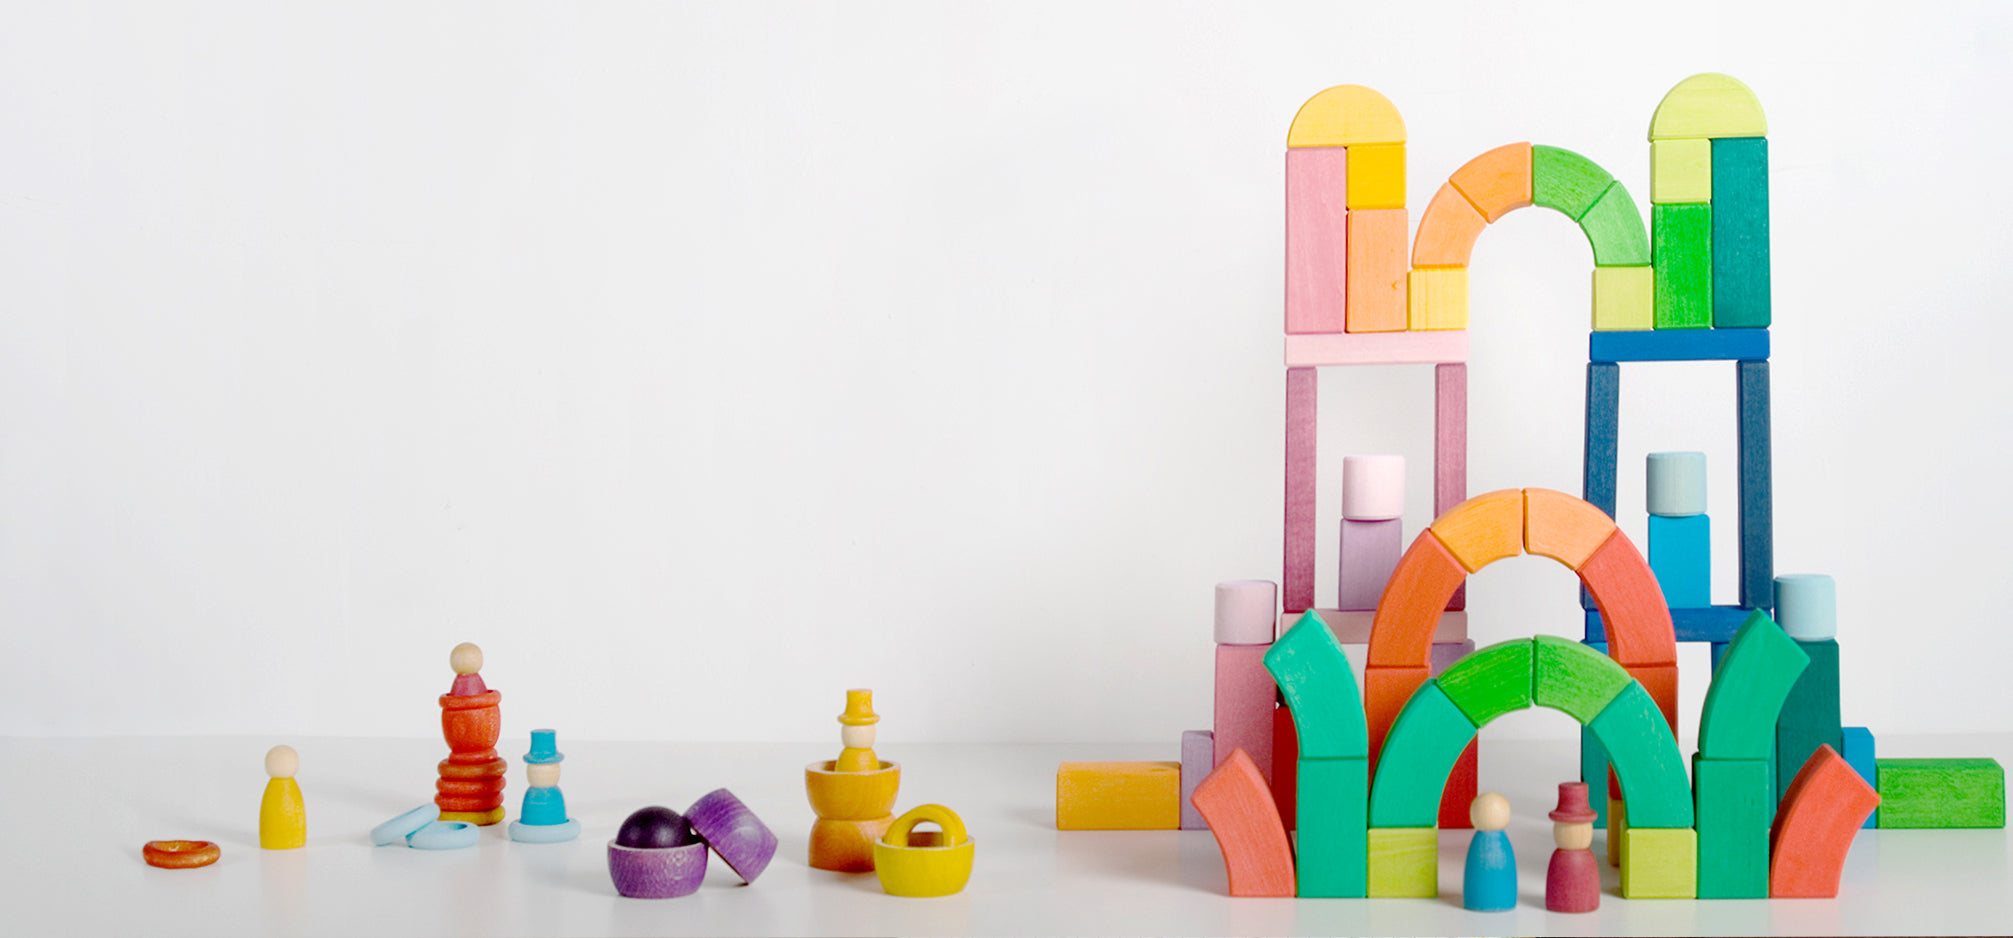 Stacks of colourful wooden blocks and toys.